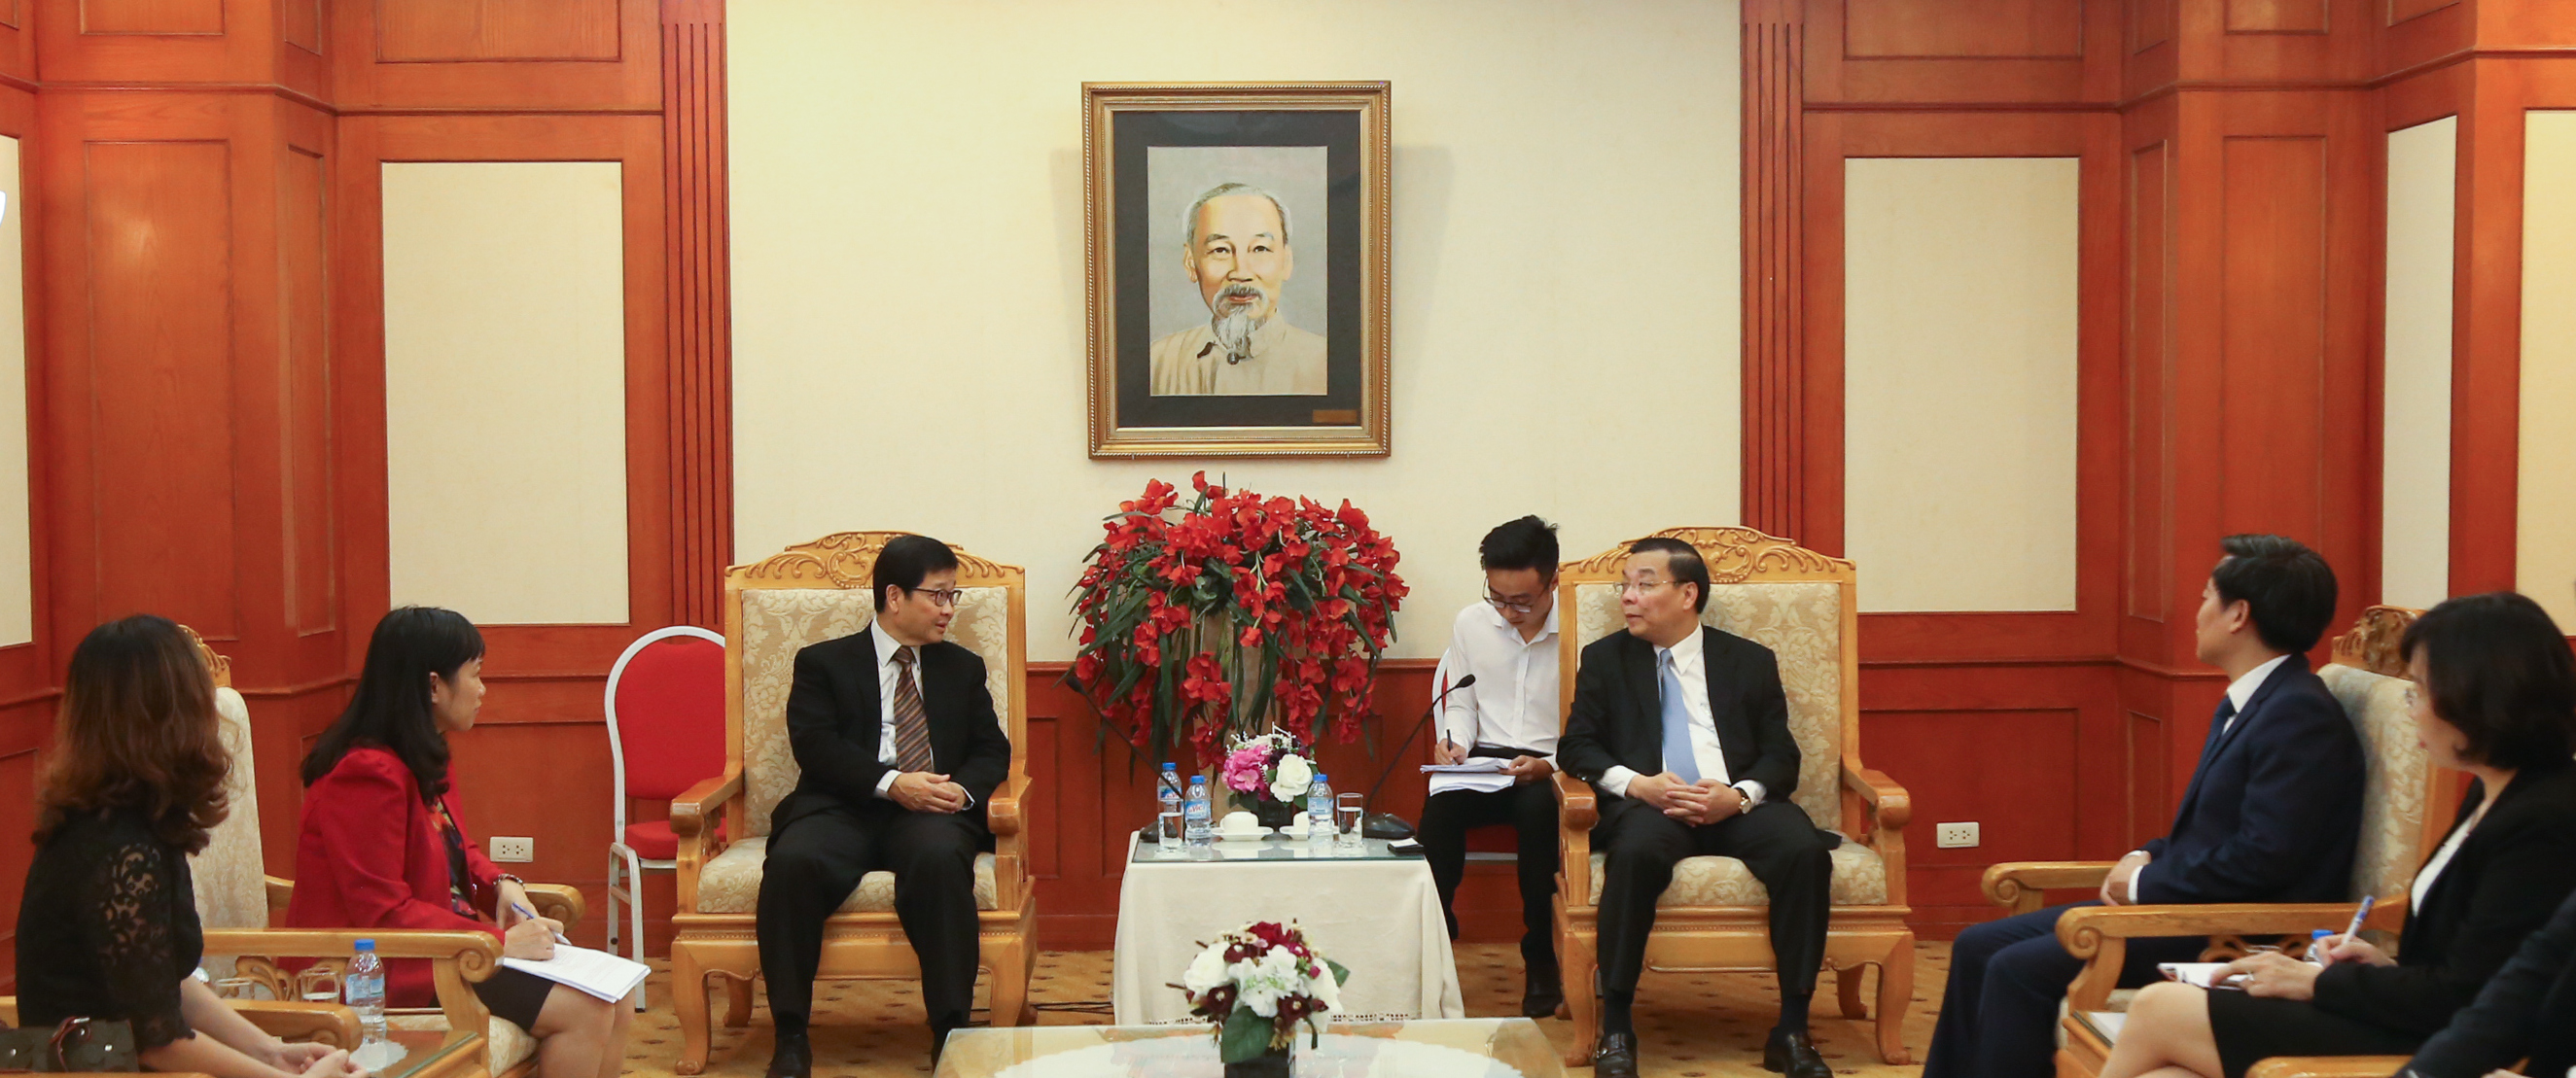 APO Secretary-General Santhi Kanoktanaporn (center L) conferring with Vietnam's Minister of Science and Technology Chu Ngoc Anh (center R) and other Vietnamese productivity stakeholders in Ho Chi Minh City.